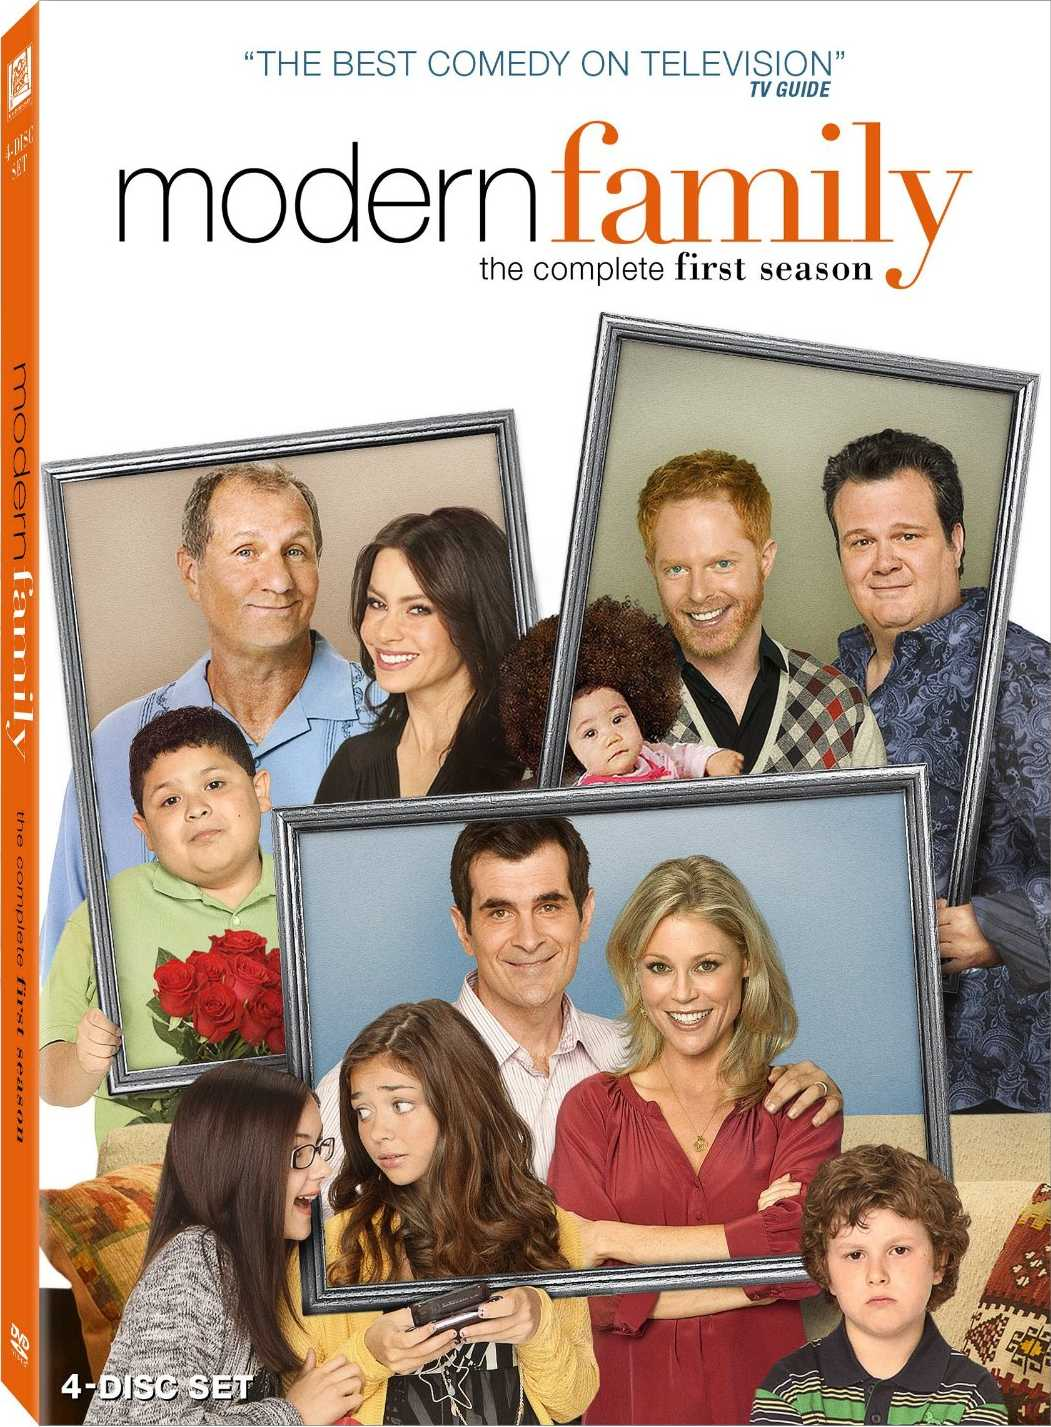 Modern family s03e09 hdtv xvid lol avi